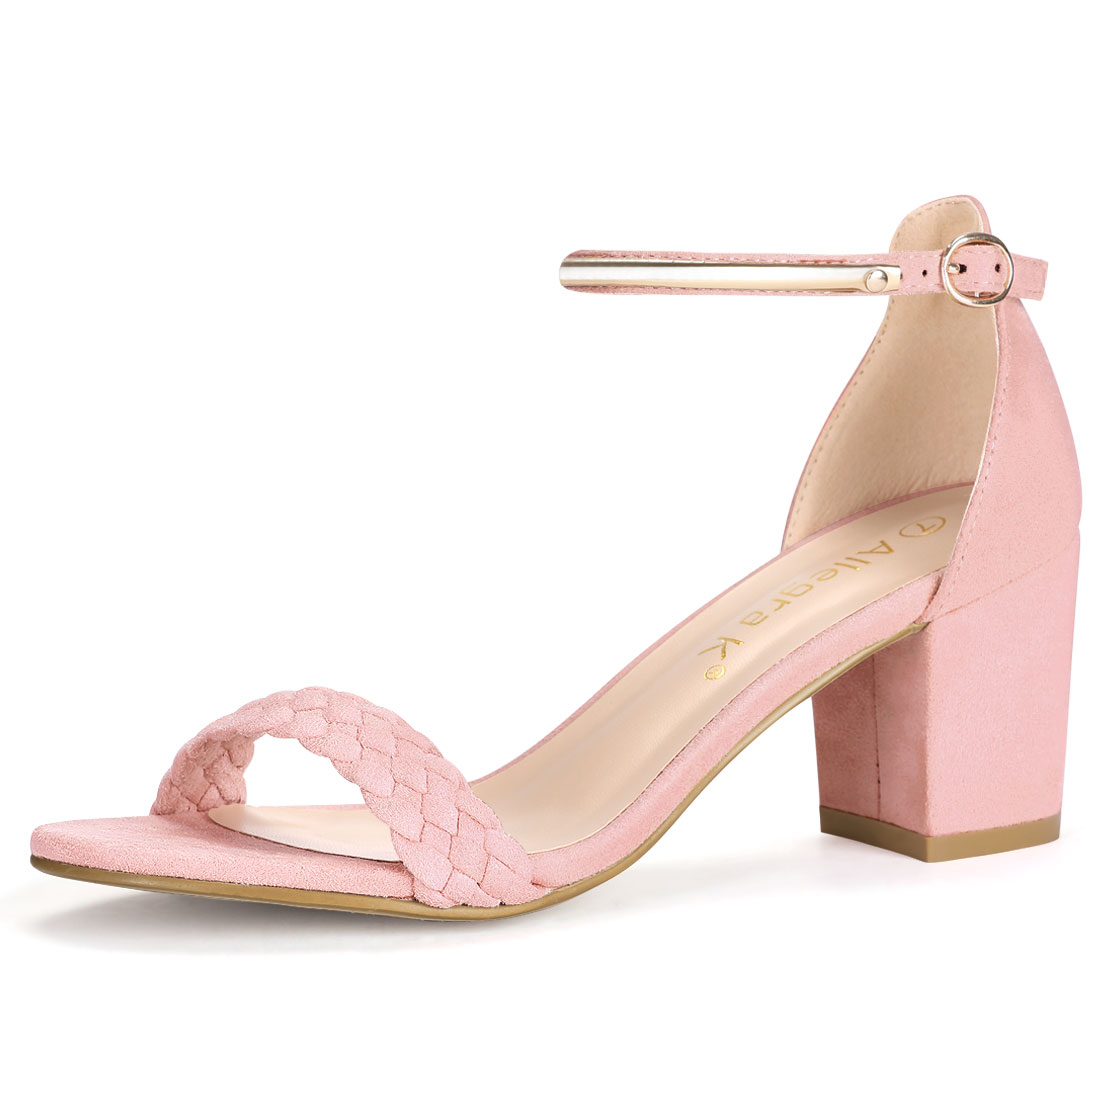 Women Open Toe Mid Heel Braided Ankle Strap Sandals Pink US 5